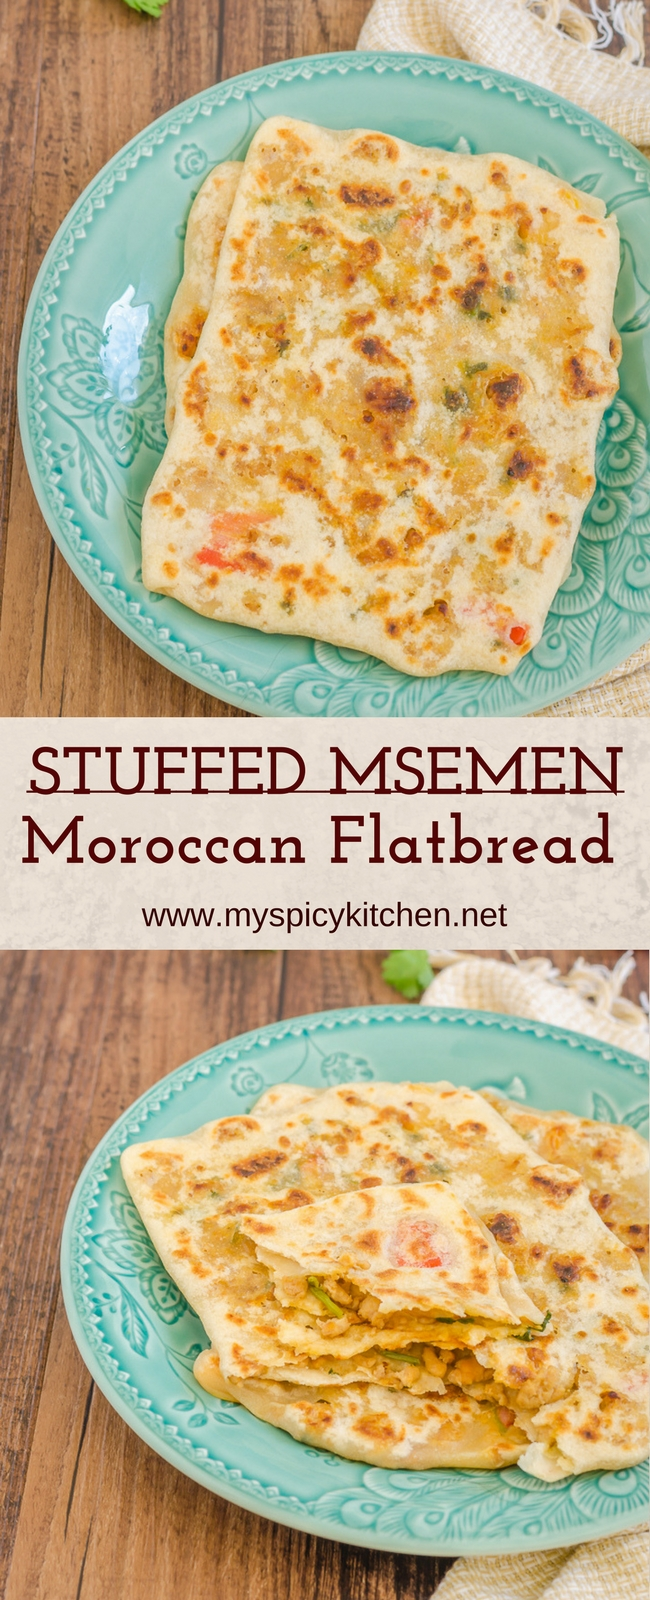 Stuffed Msemen Pinterest long pin